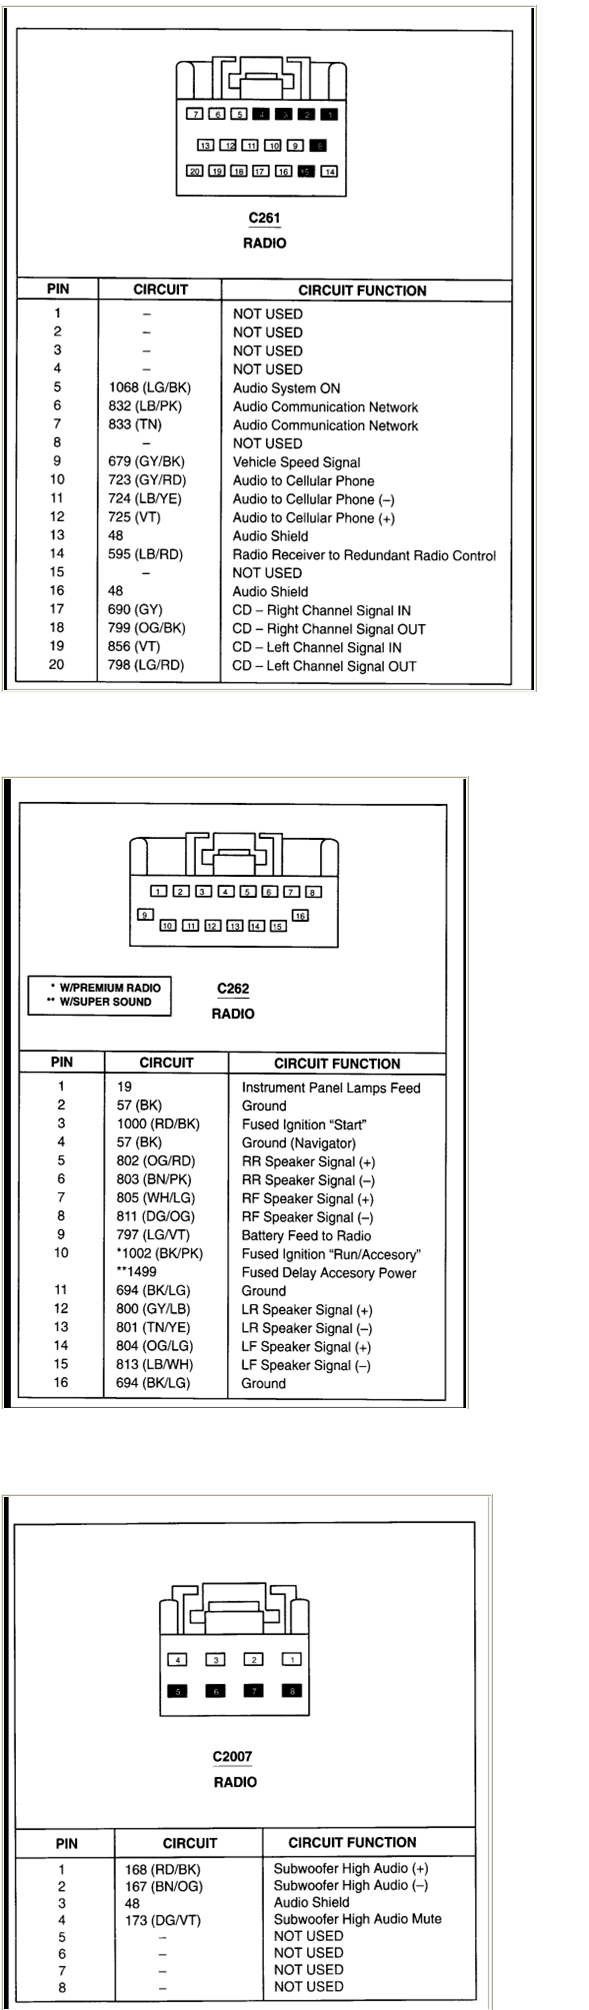 30 Kenwood Kvt 512 Wiring Diagram